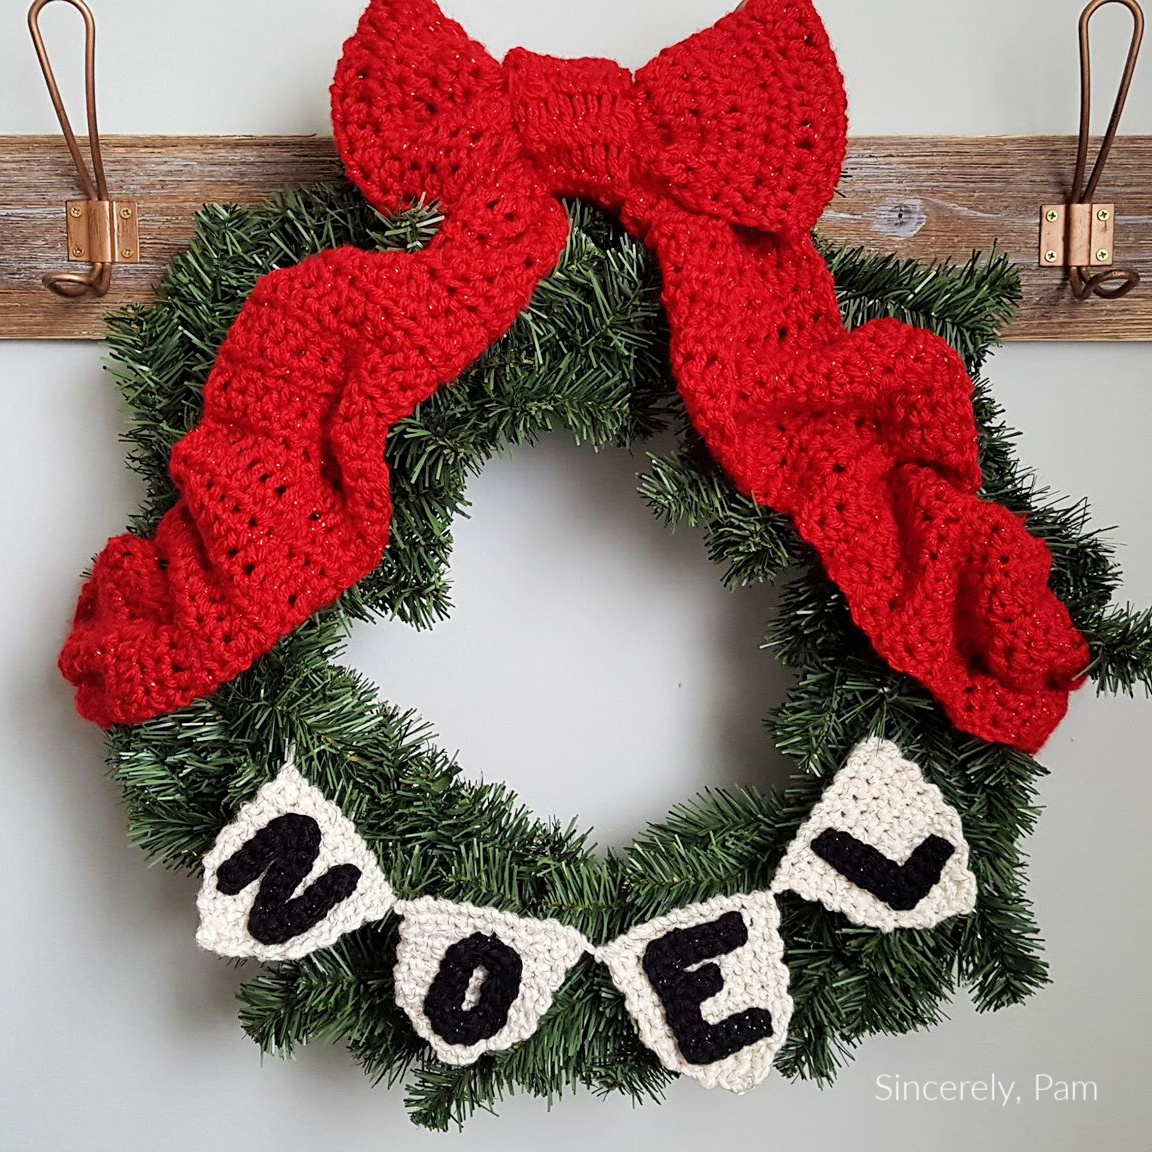 NOEL Wreath bunting crochet pattern by Sincerely, Pam